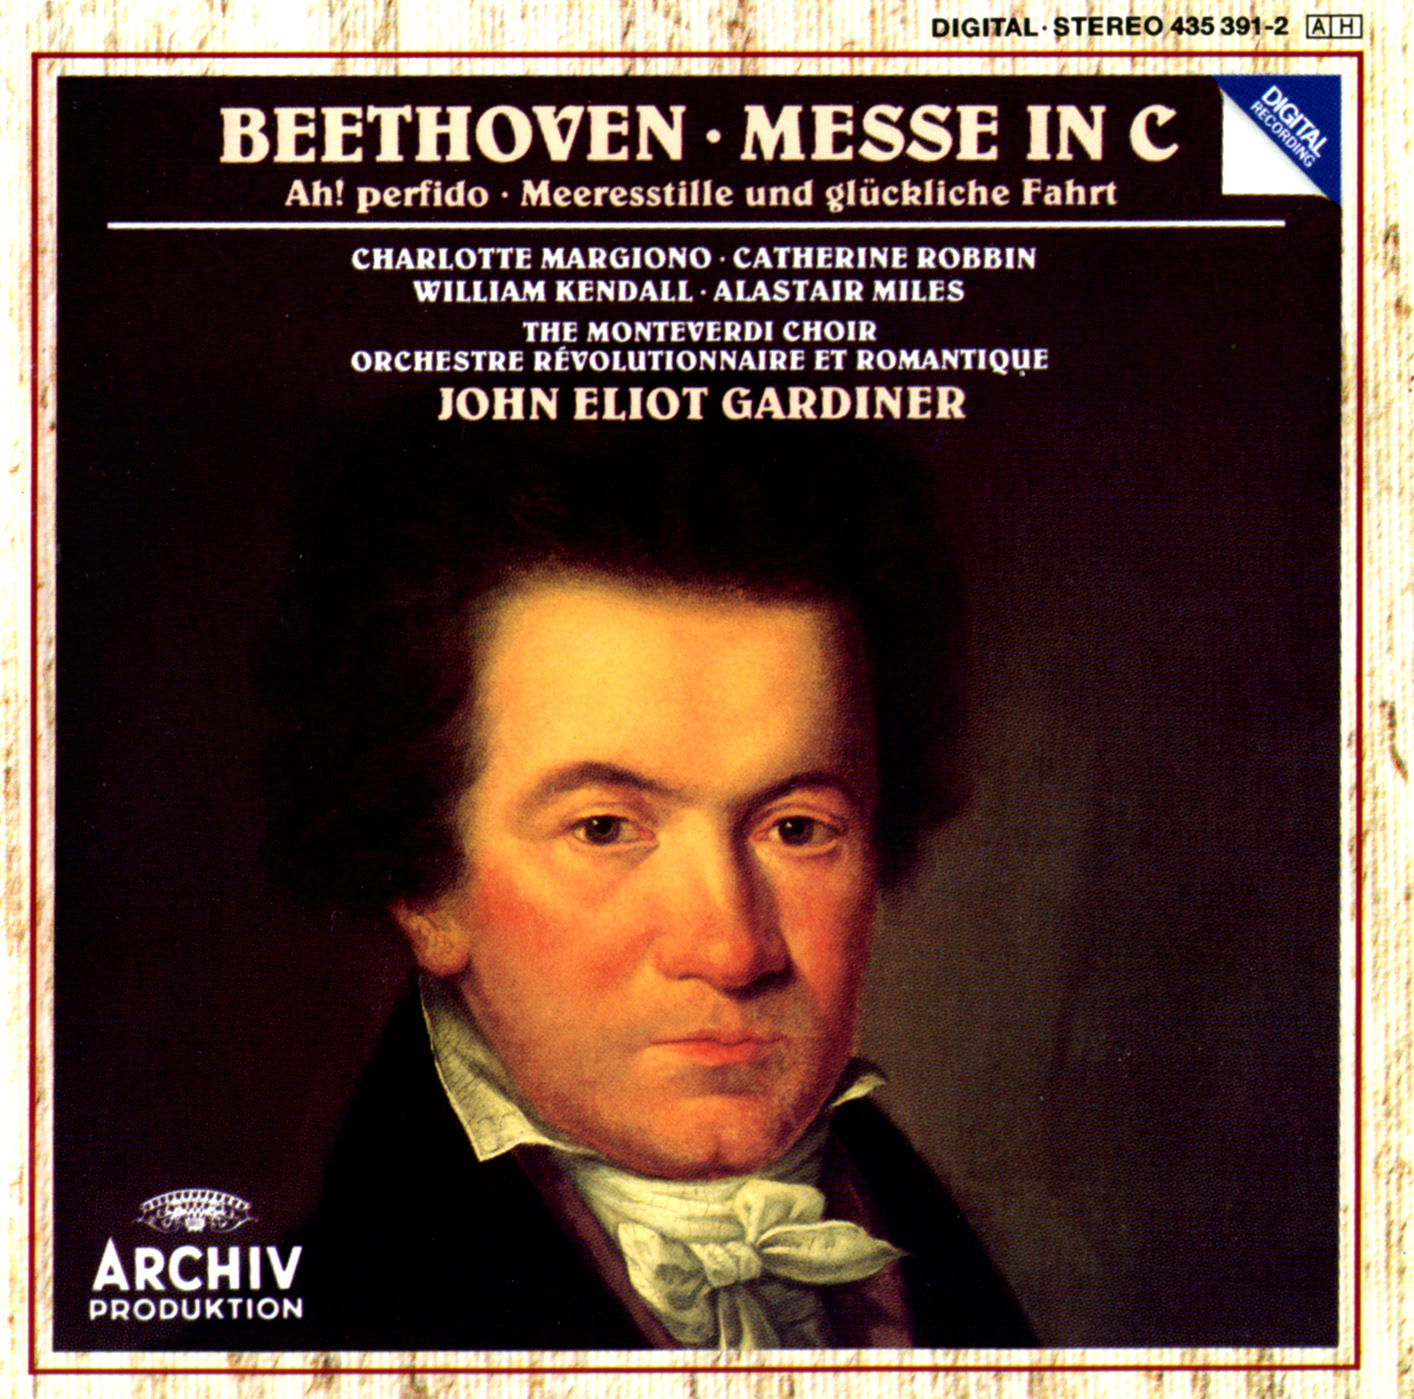 Beethoven Messe